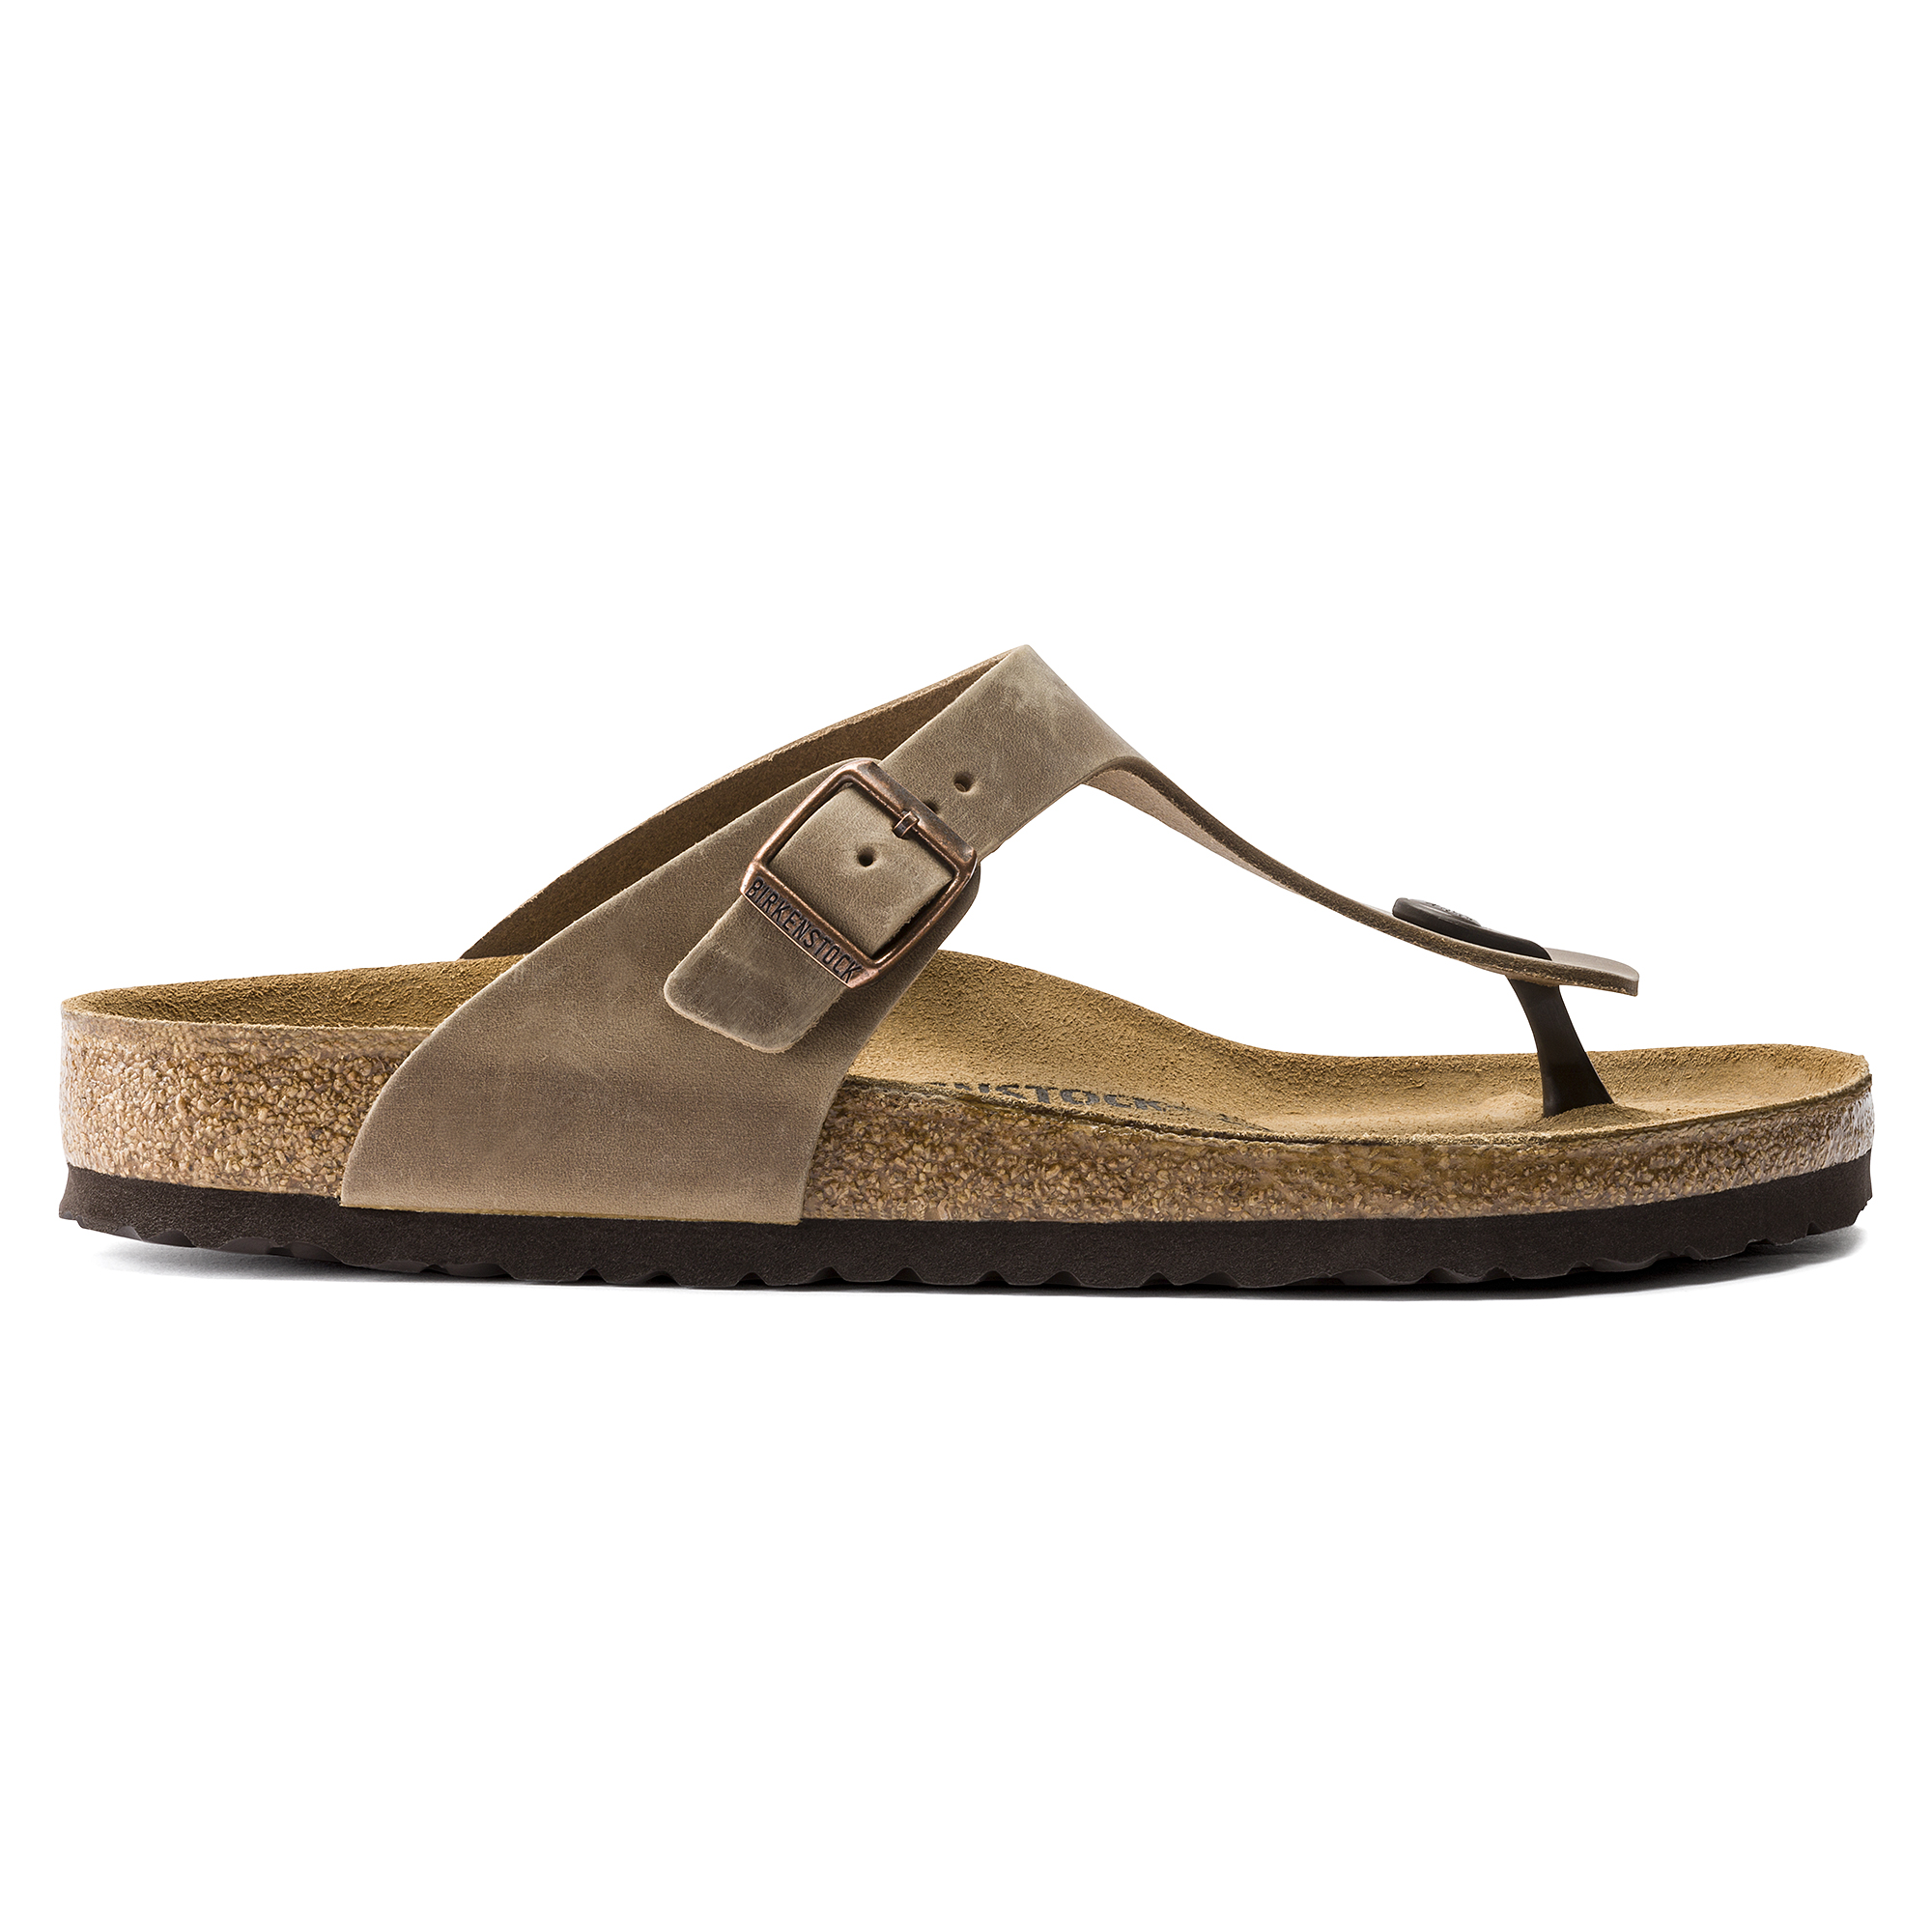 Birkenstock Gizeh Oiled Leather Regular Fit Sandal (Tobacco Brown, Size 41 EU)